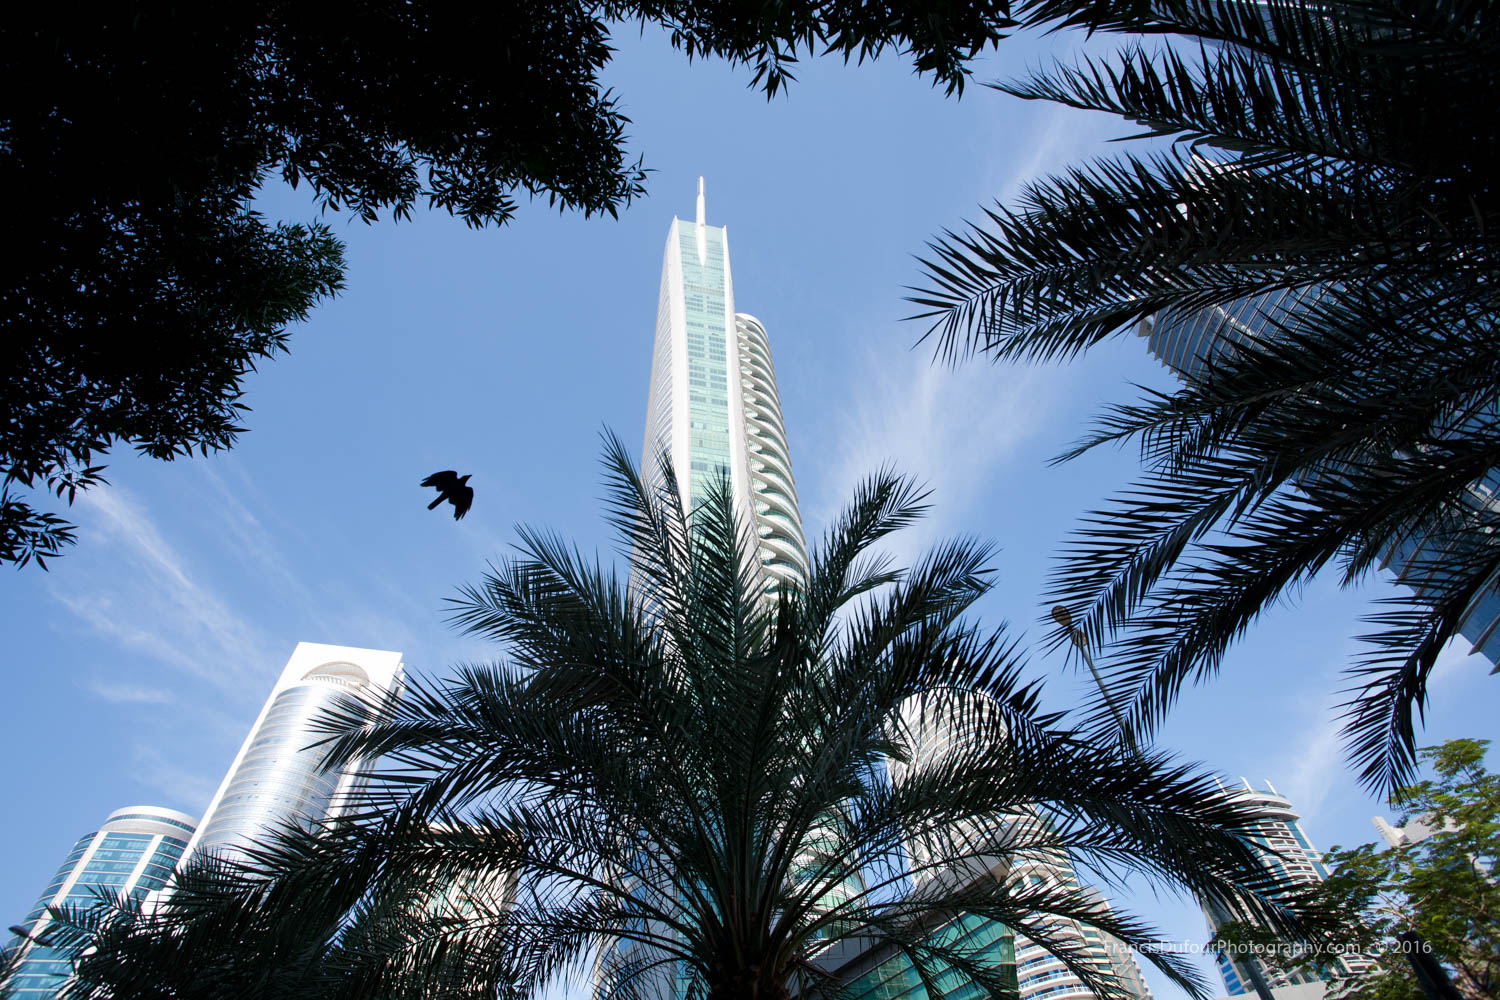 Almas Tower in JLT (Dubai, UAE)